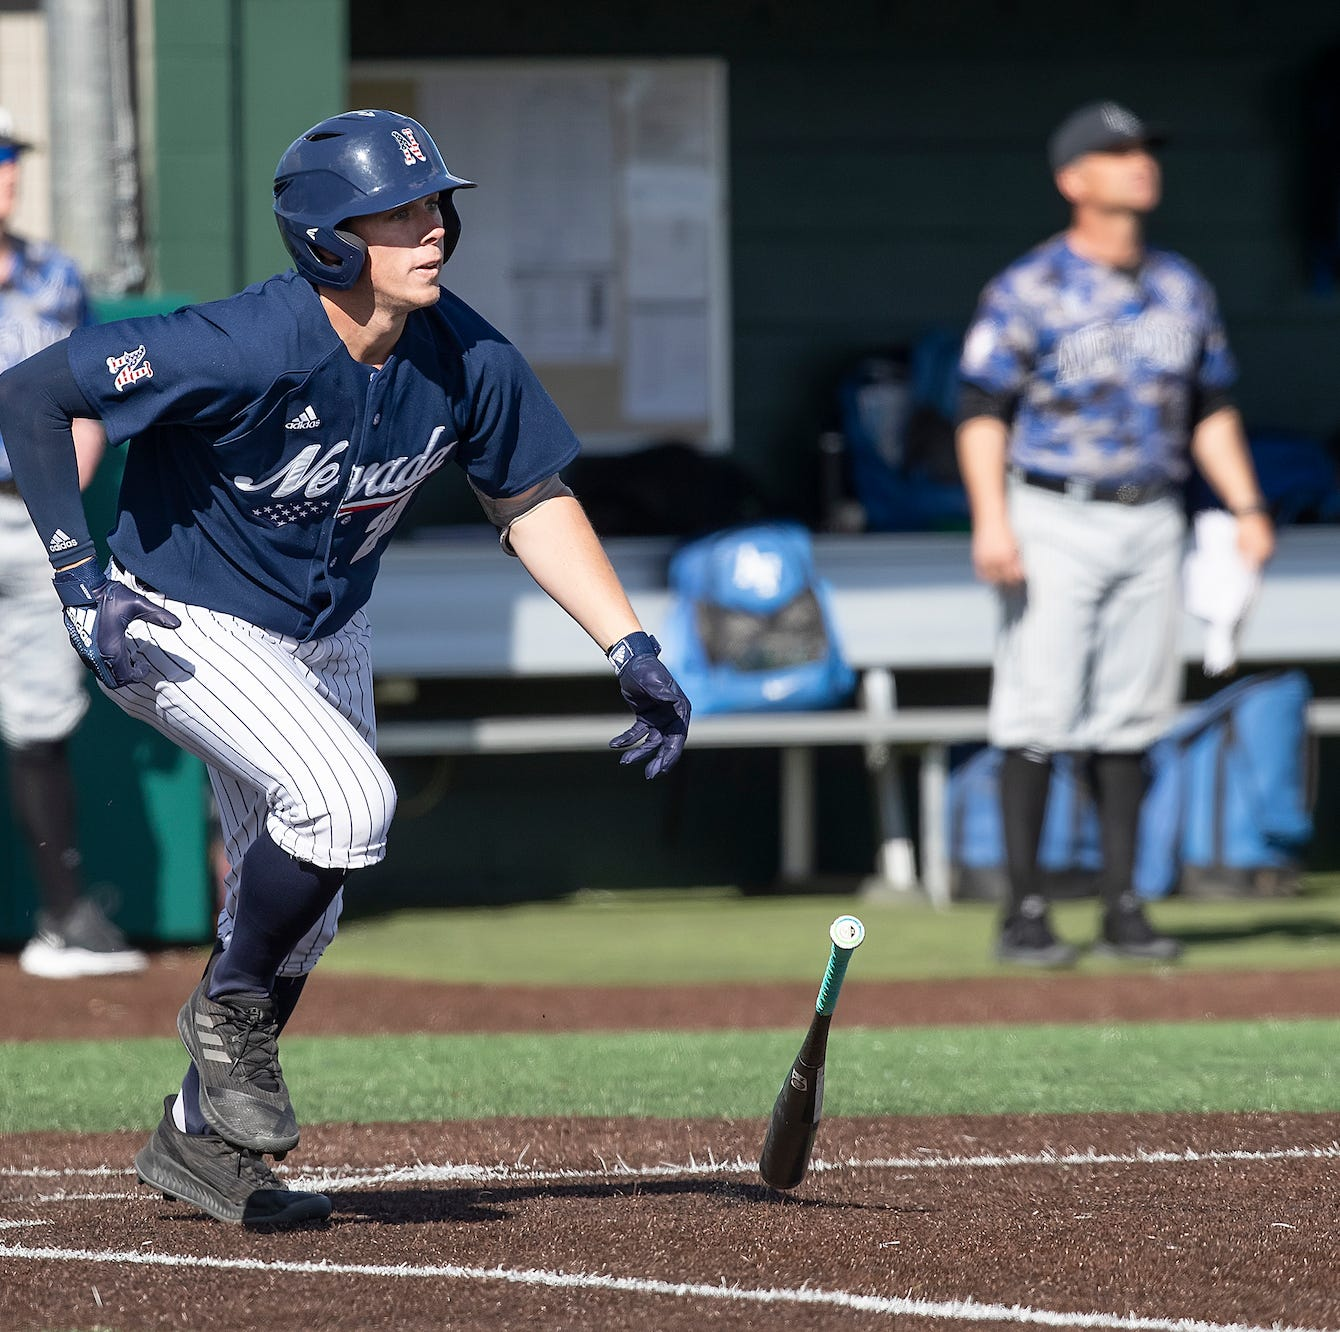 Crunch time: Nevada baseball faces Fresno State in crucial series